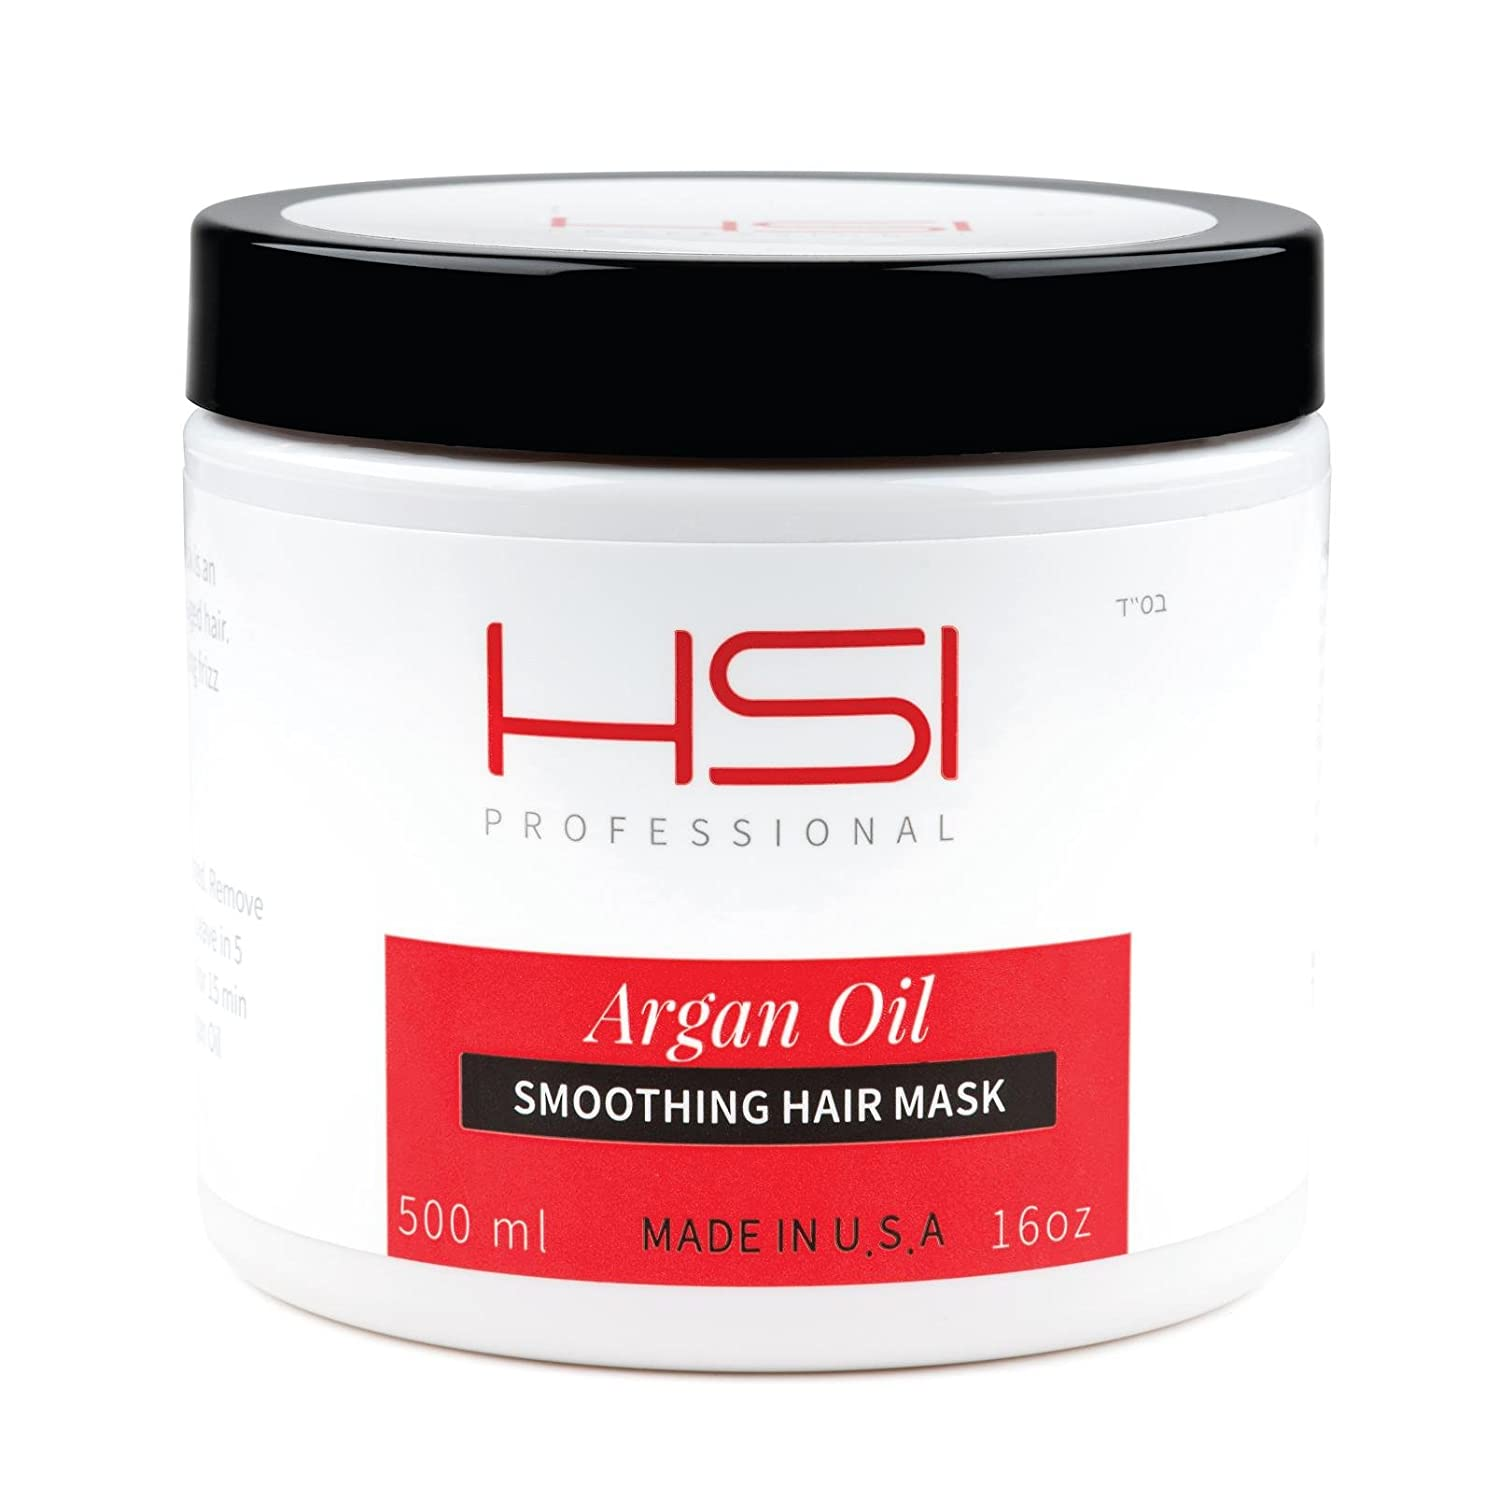 HSI PROFESSIONAL Hydrating smoothing Anti-Frizz Hair Mask for all hair types, infused with vitamins a, b, c, & d. creates silky, smooth and healthy hair. sulfate free. Made in USA. no more split ends (16oz) mask8oz